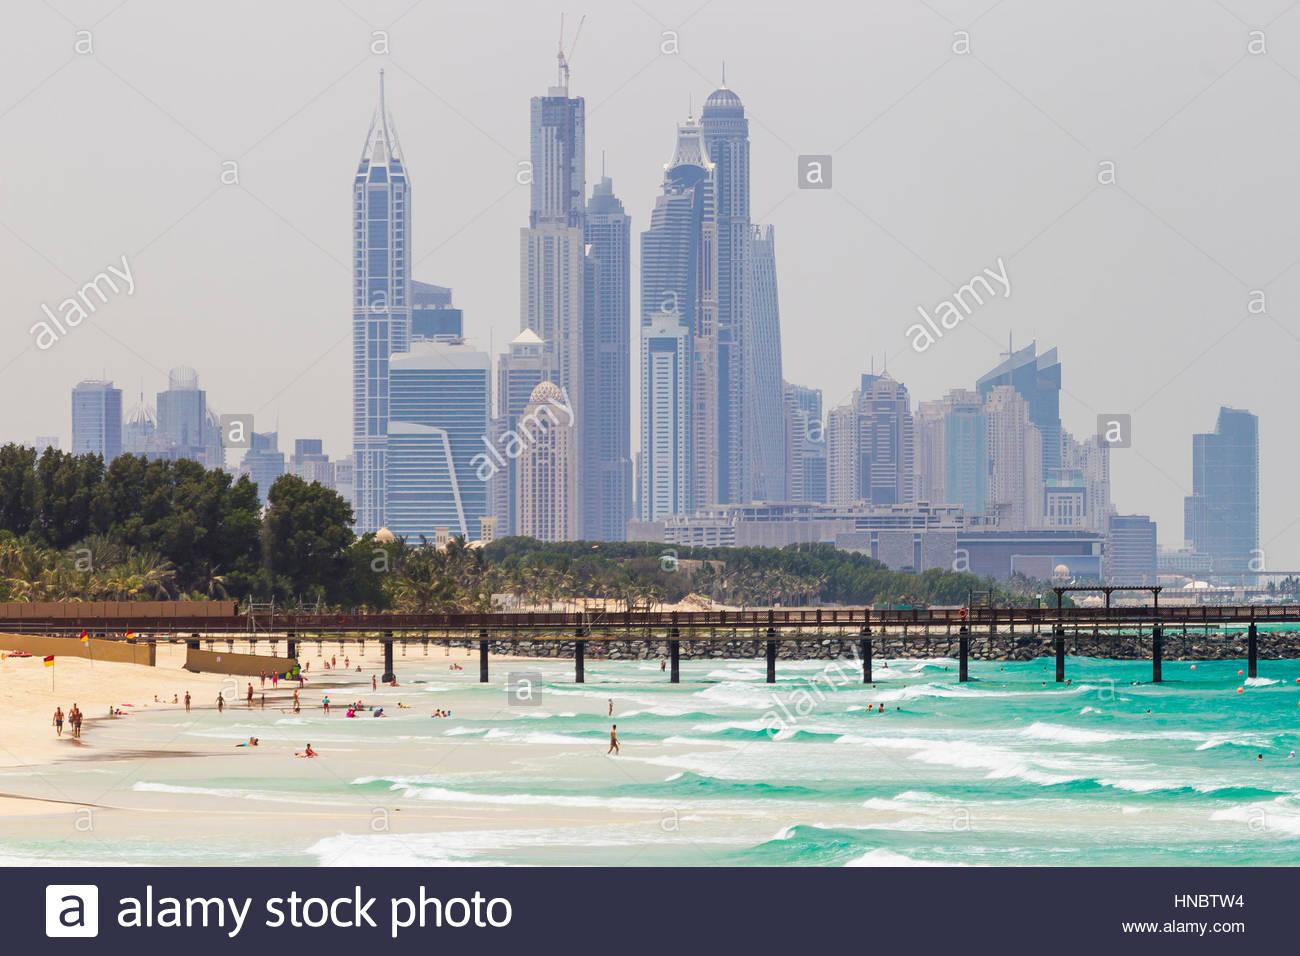 Waves coming ashore on Persian Gulf beaches, with a backdrop of the Dubai skyline, in 2014. - Stock Image